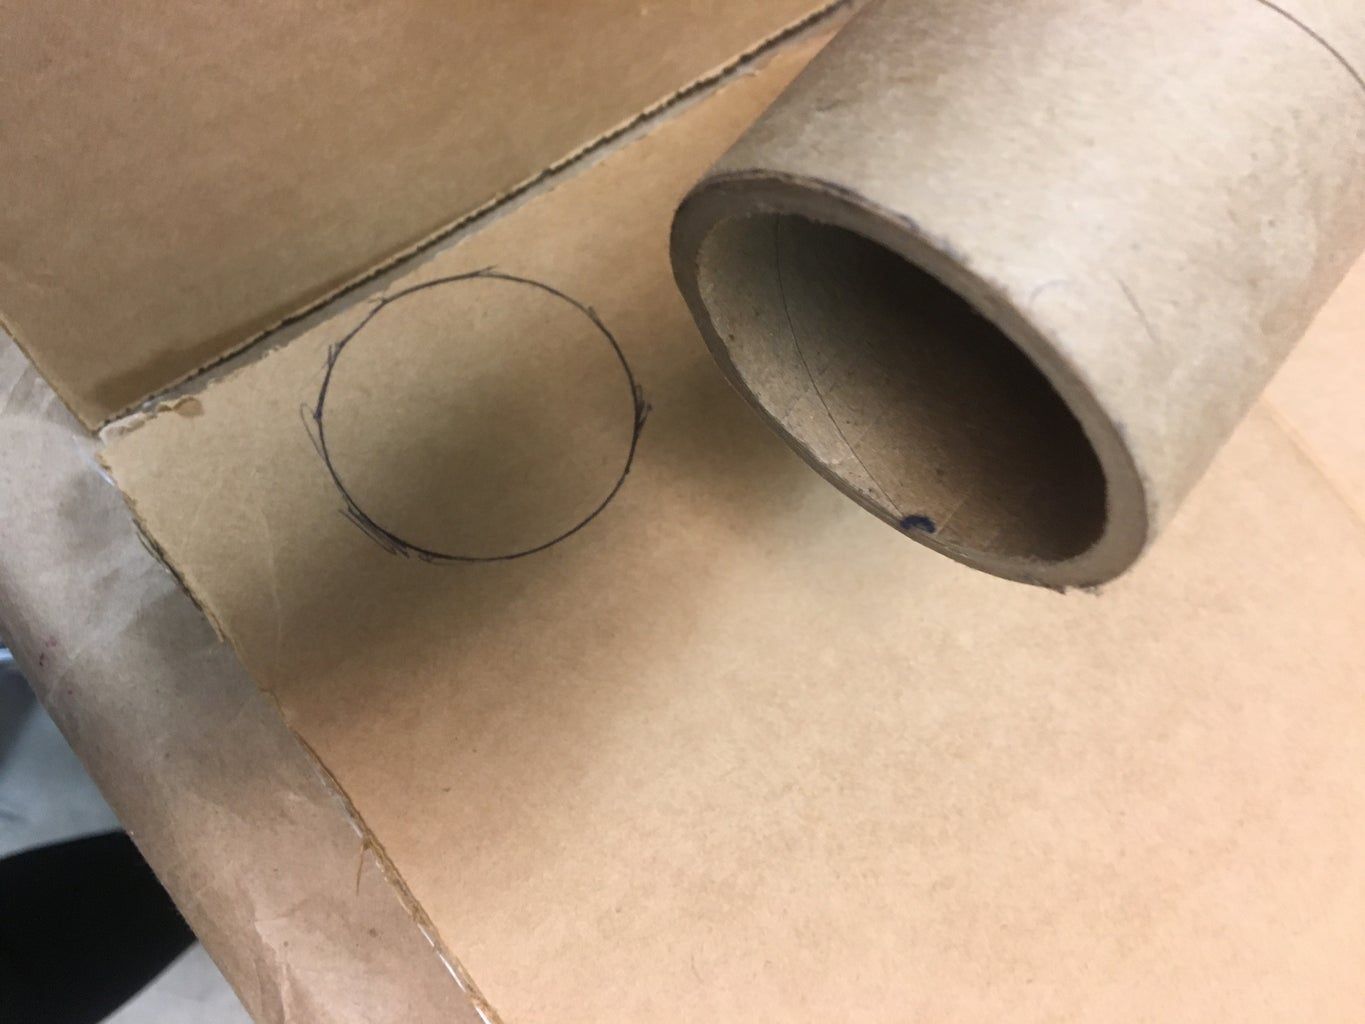 Making the Cardboard Cup